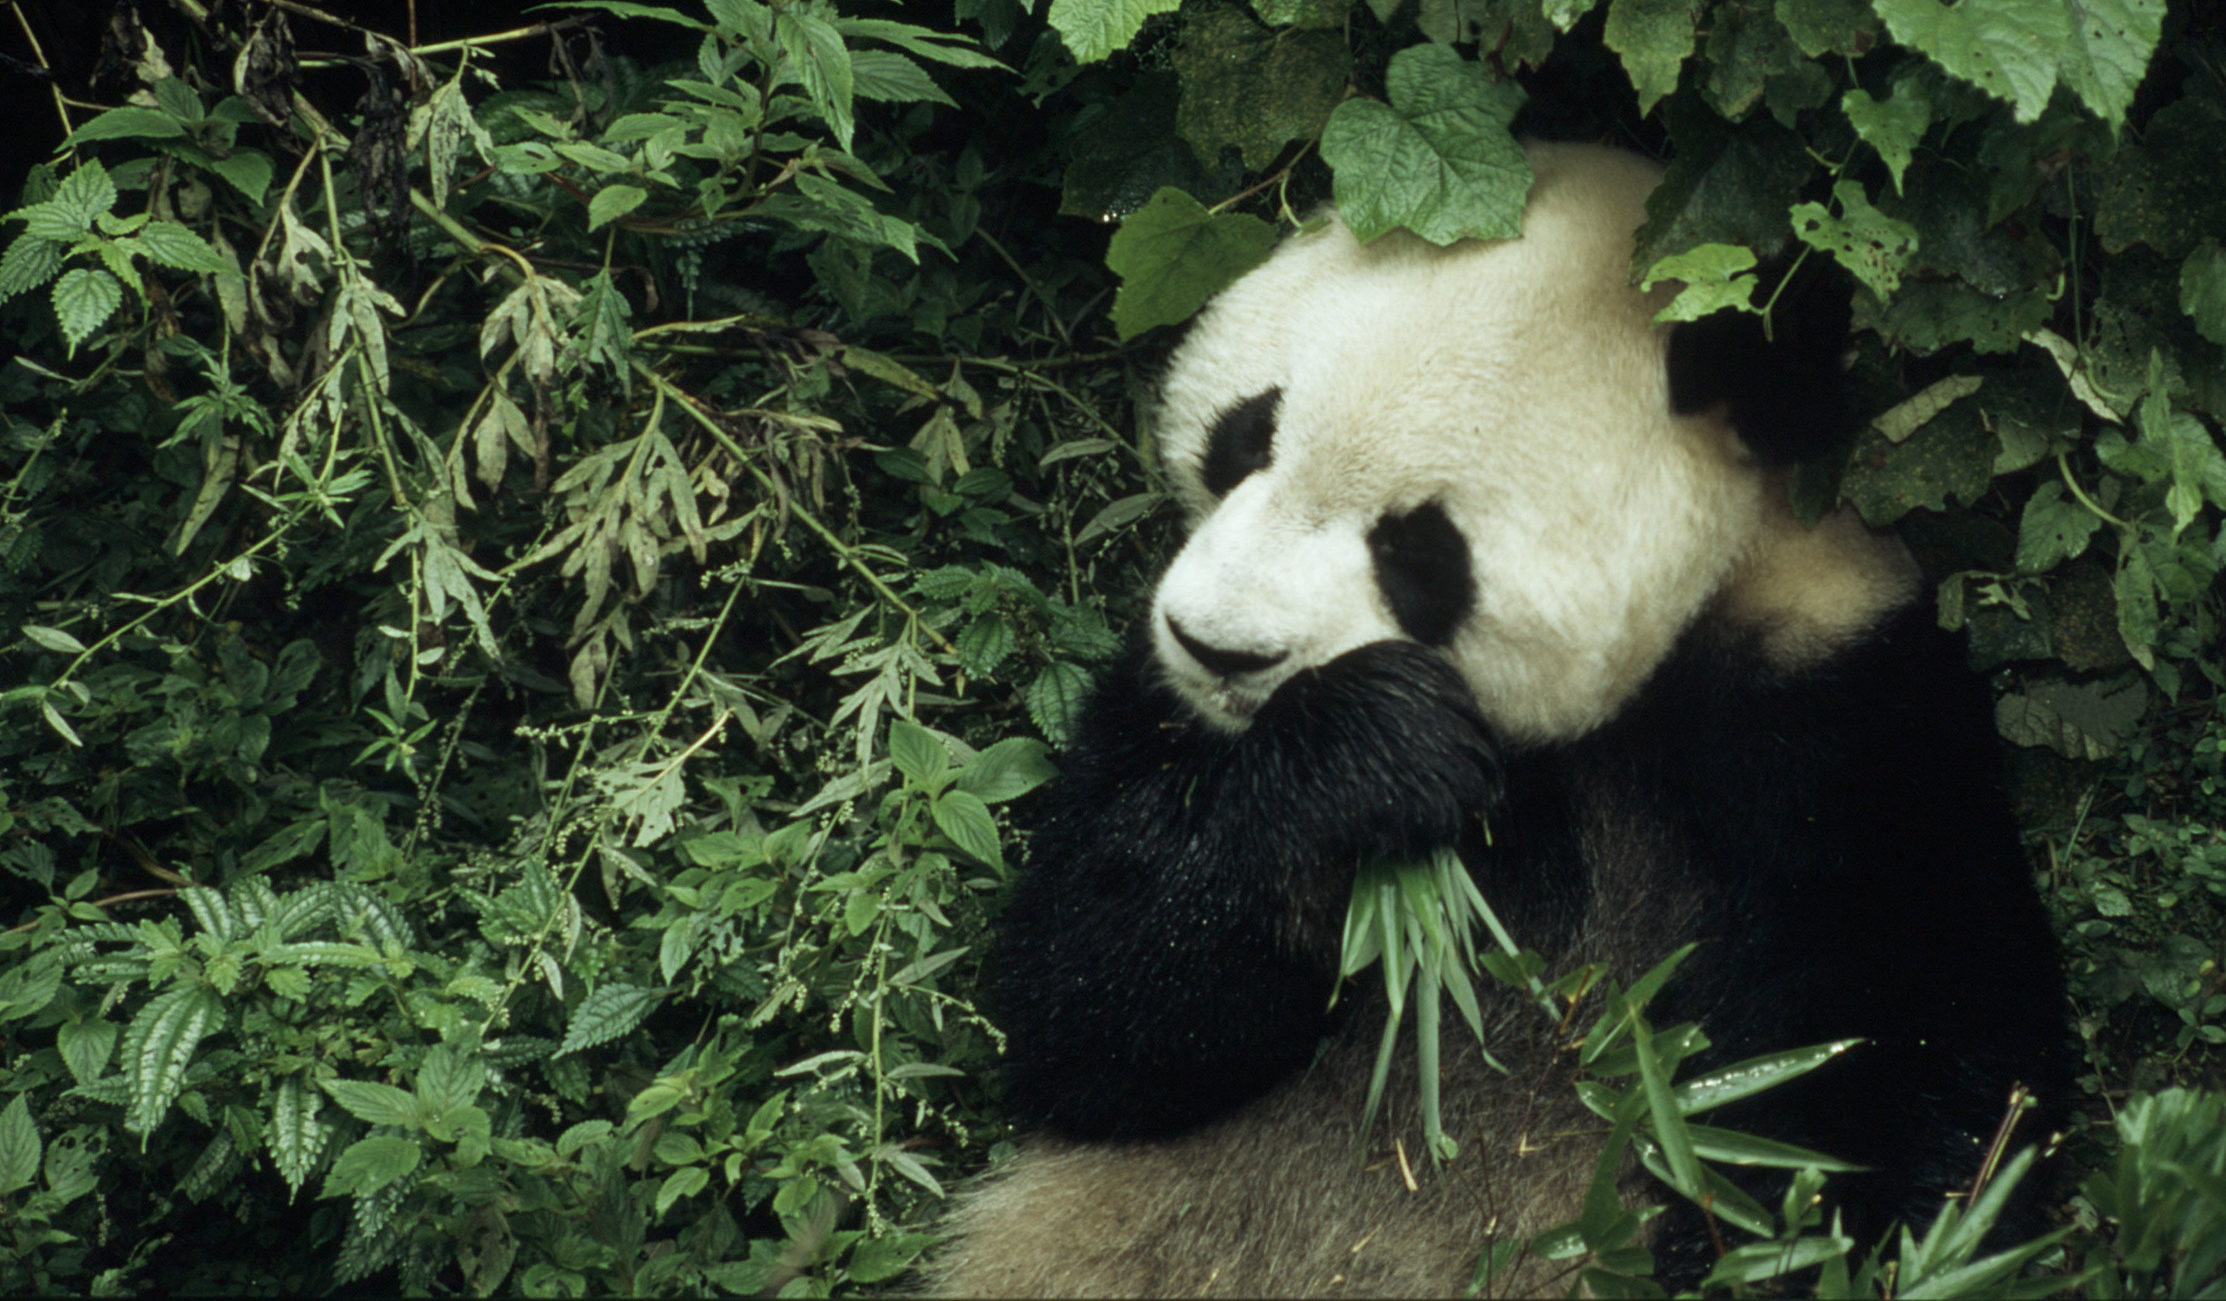 6 year old male giant panda eating bamboo